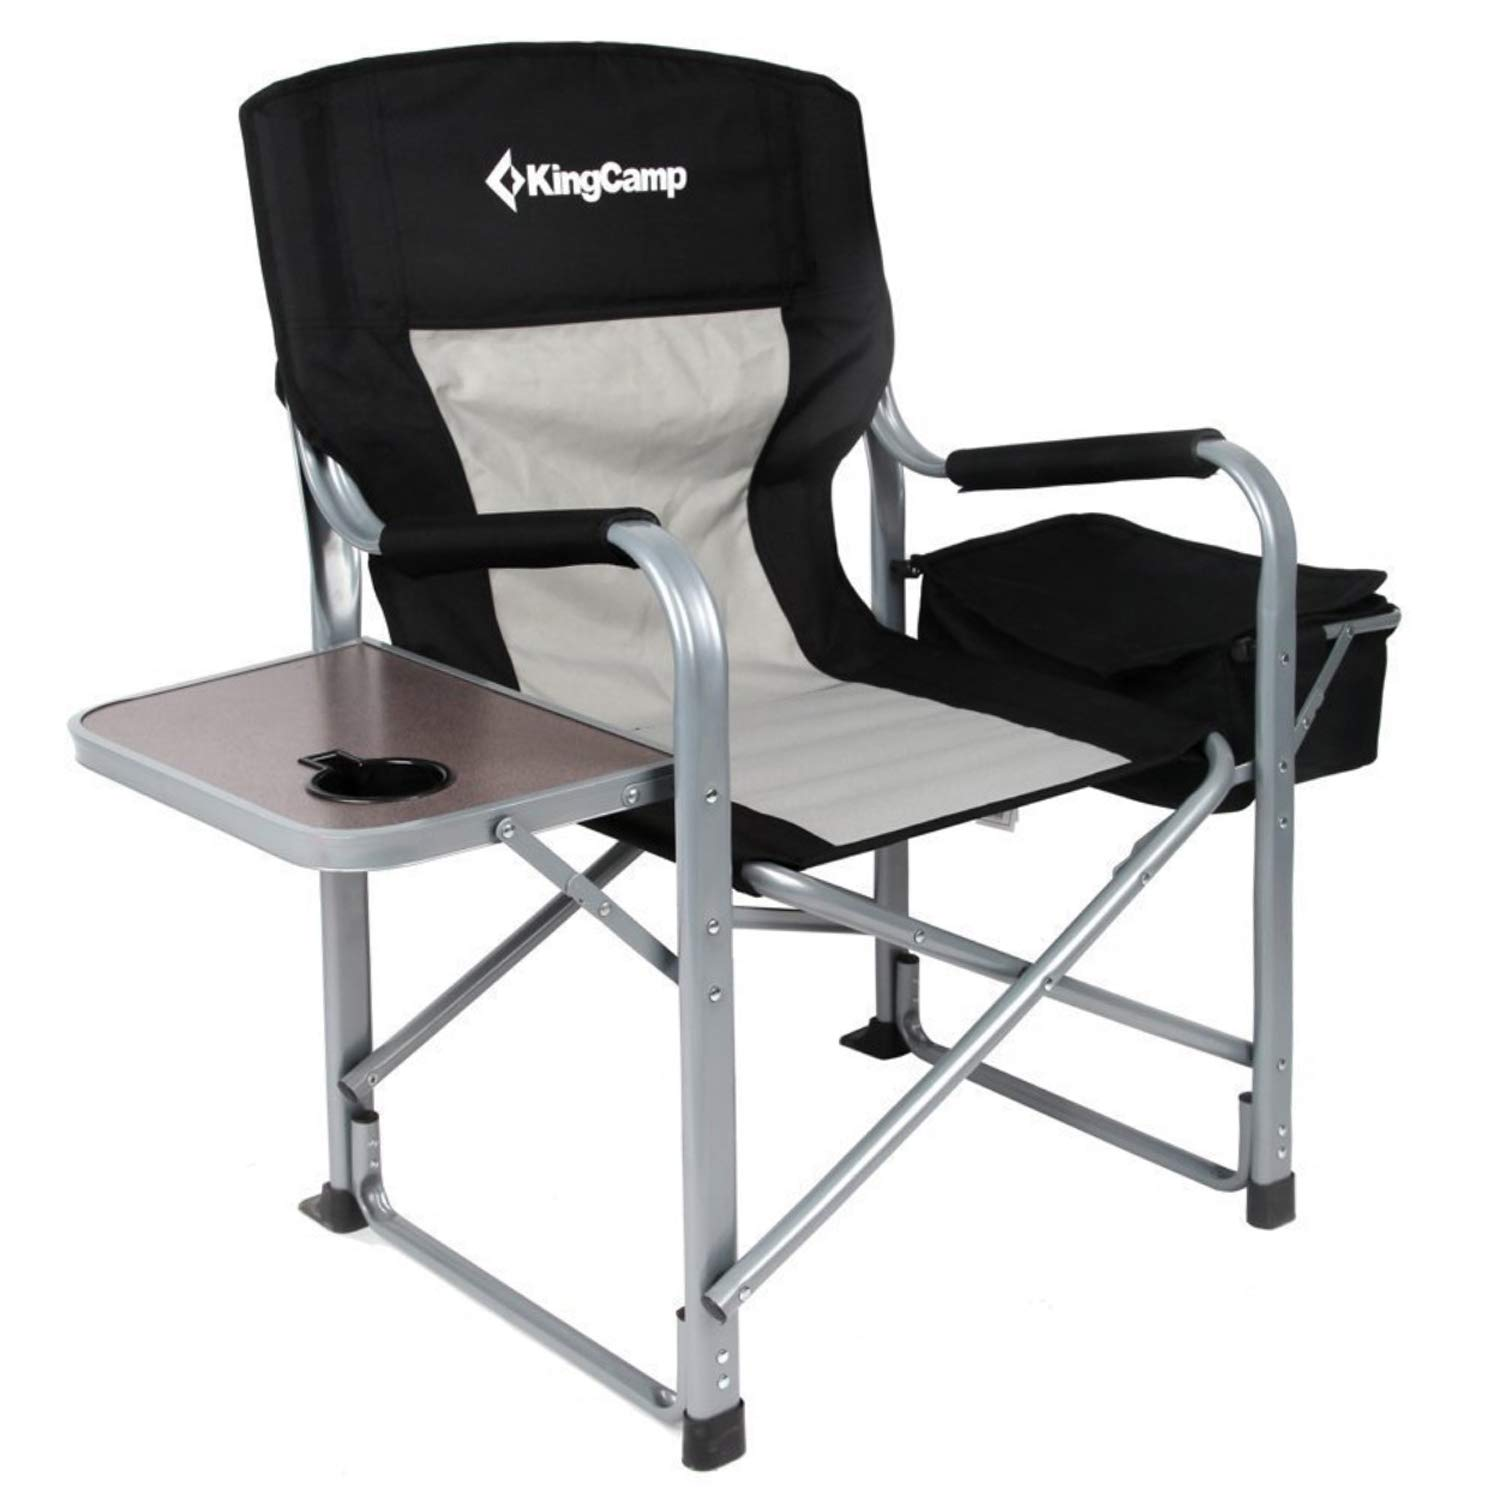 KingCamp Heavy Duty Steel Camping Folding Director Chair with Cooler Bag and Side Table by KingCamp